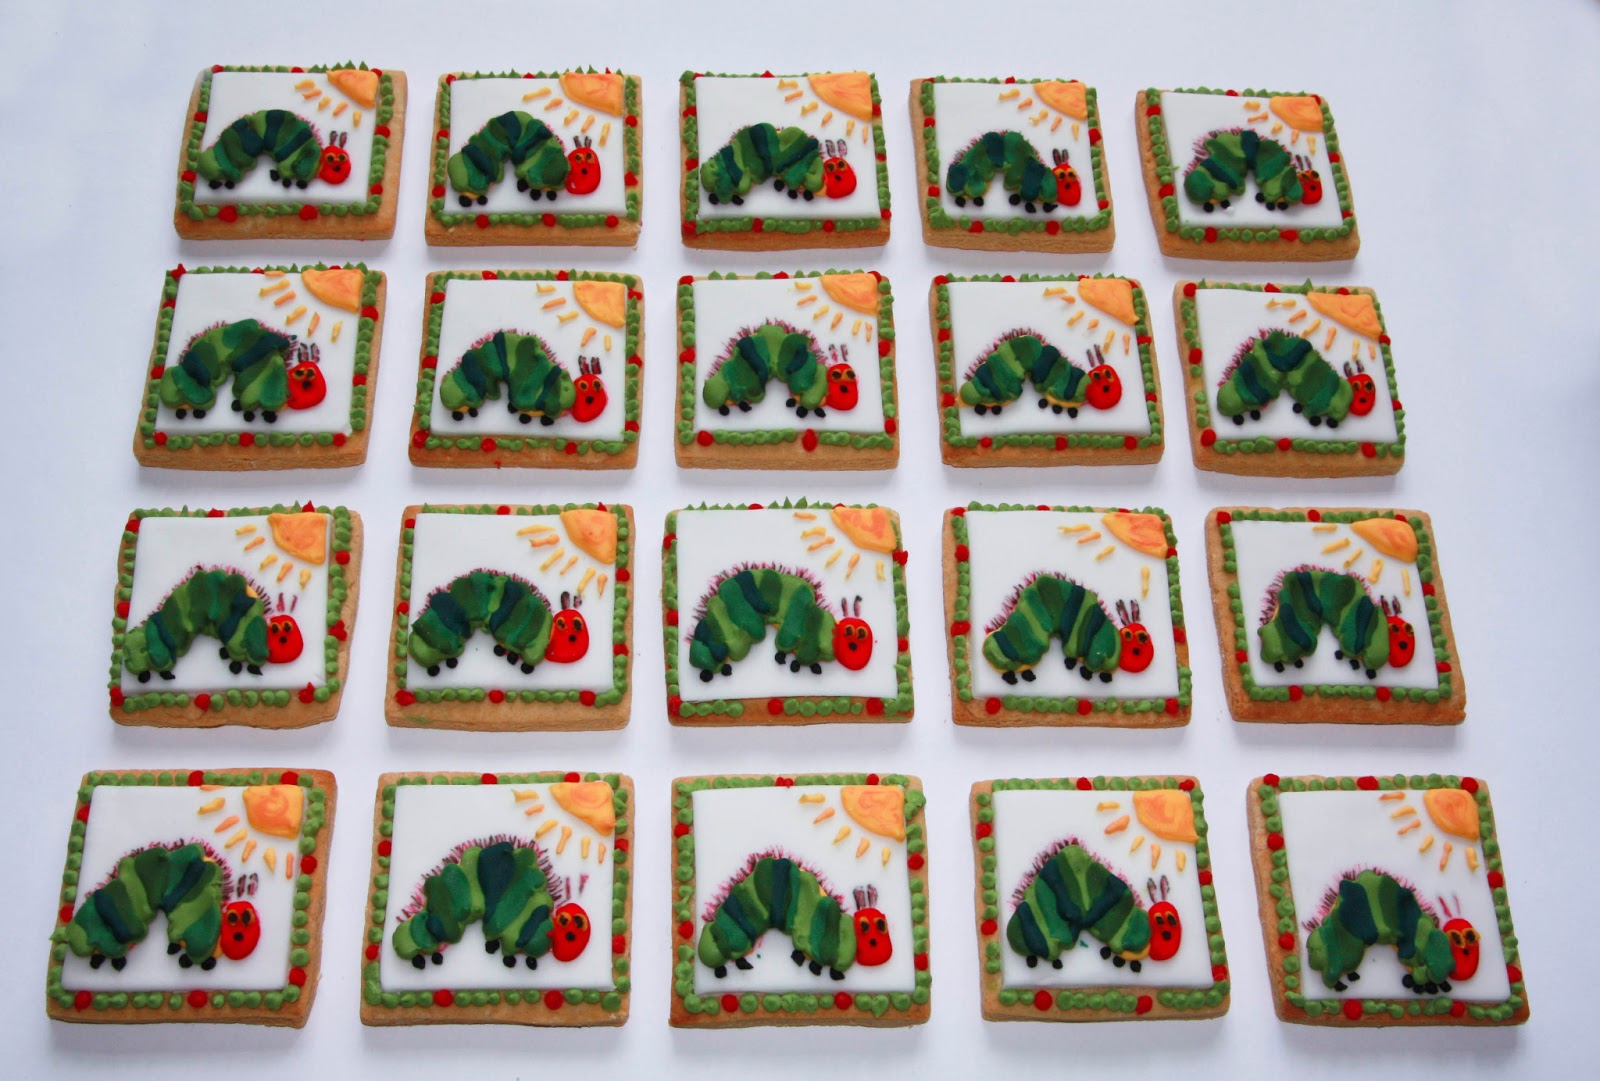 Very Hungry Caterpillar Wall Stickers The Cake Trail The Very Hungry Caterpillar Biscuits